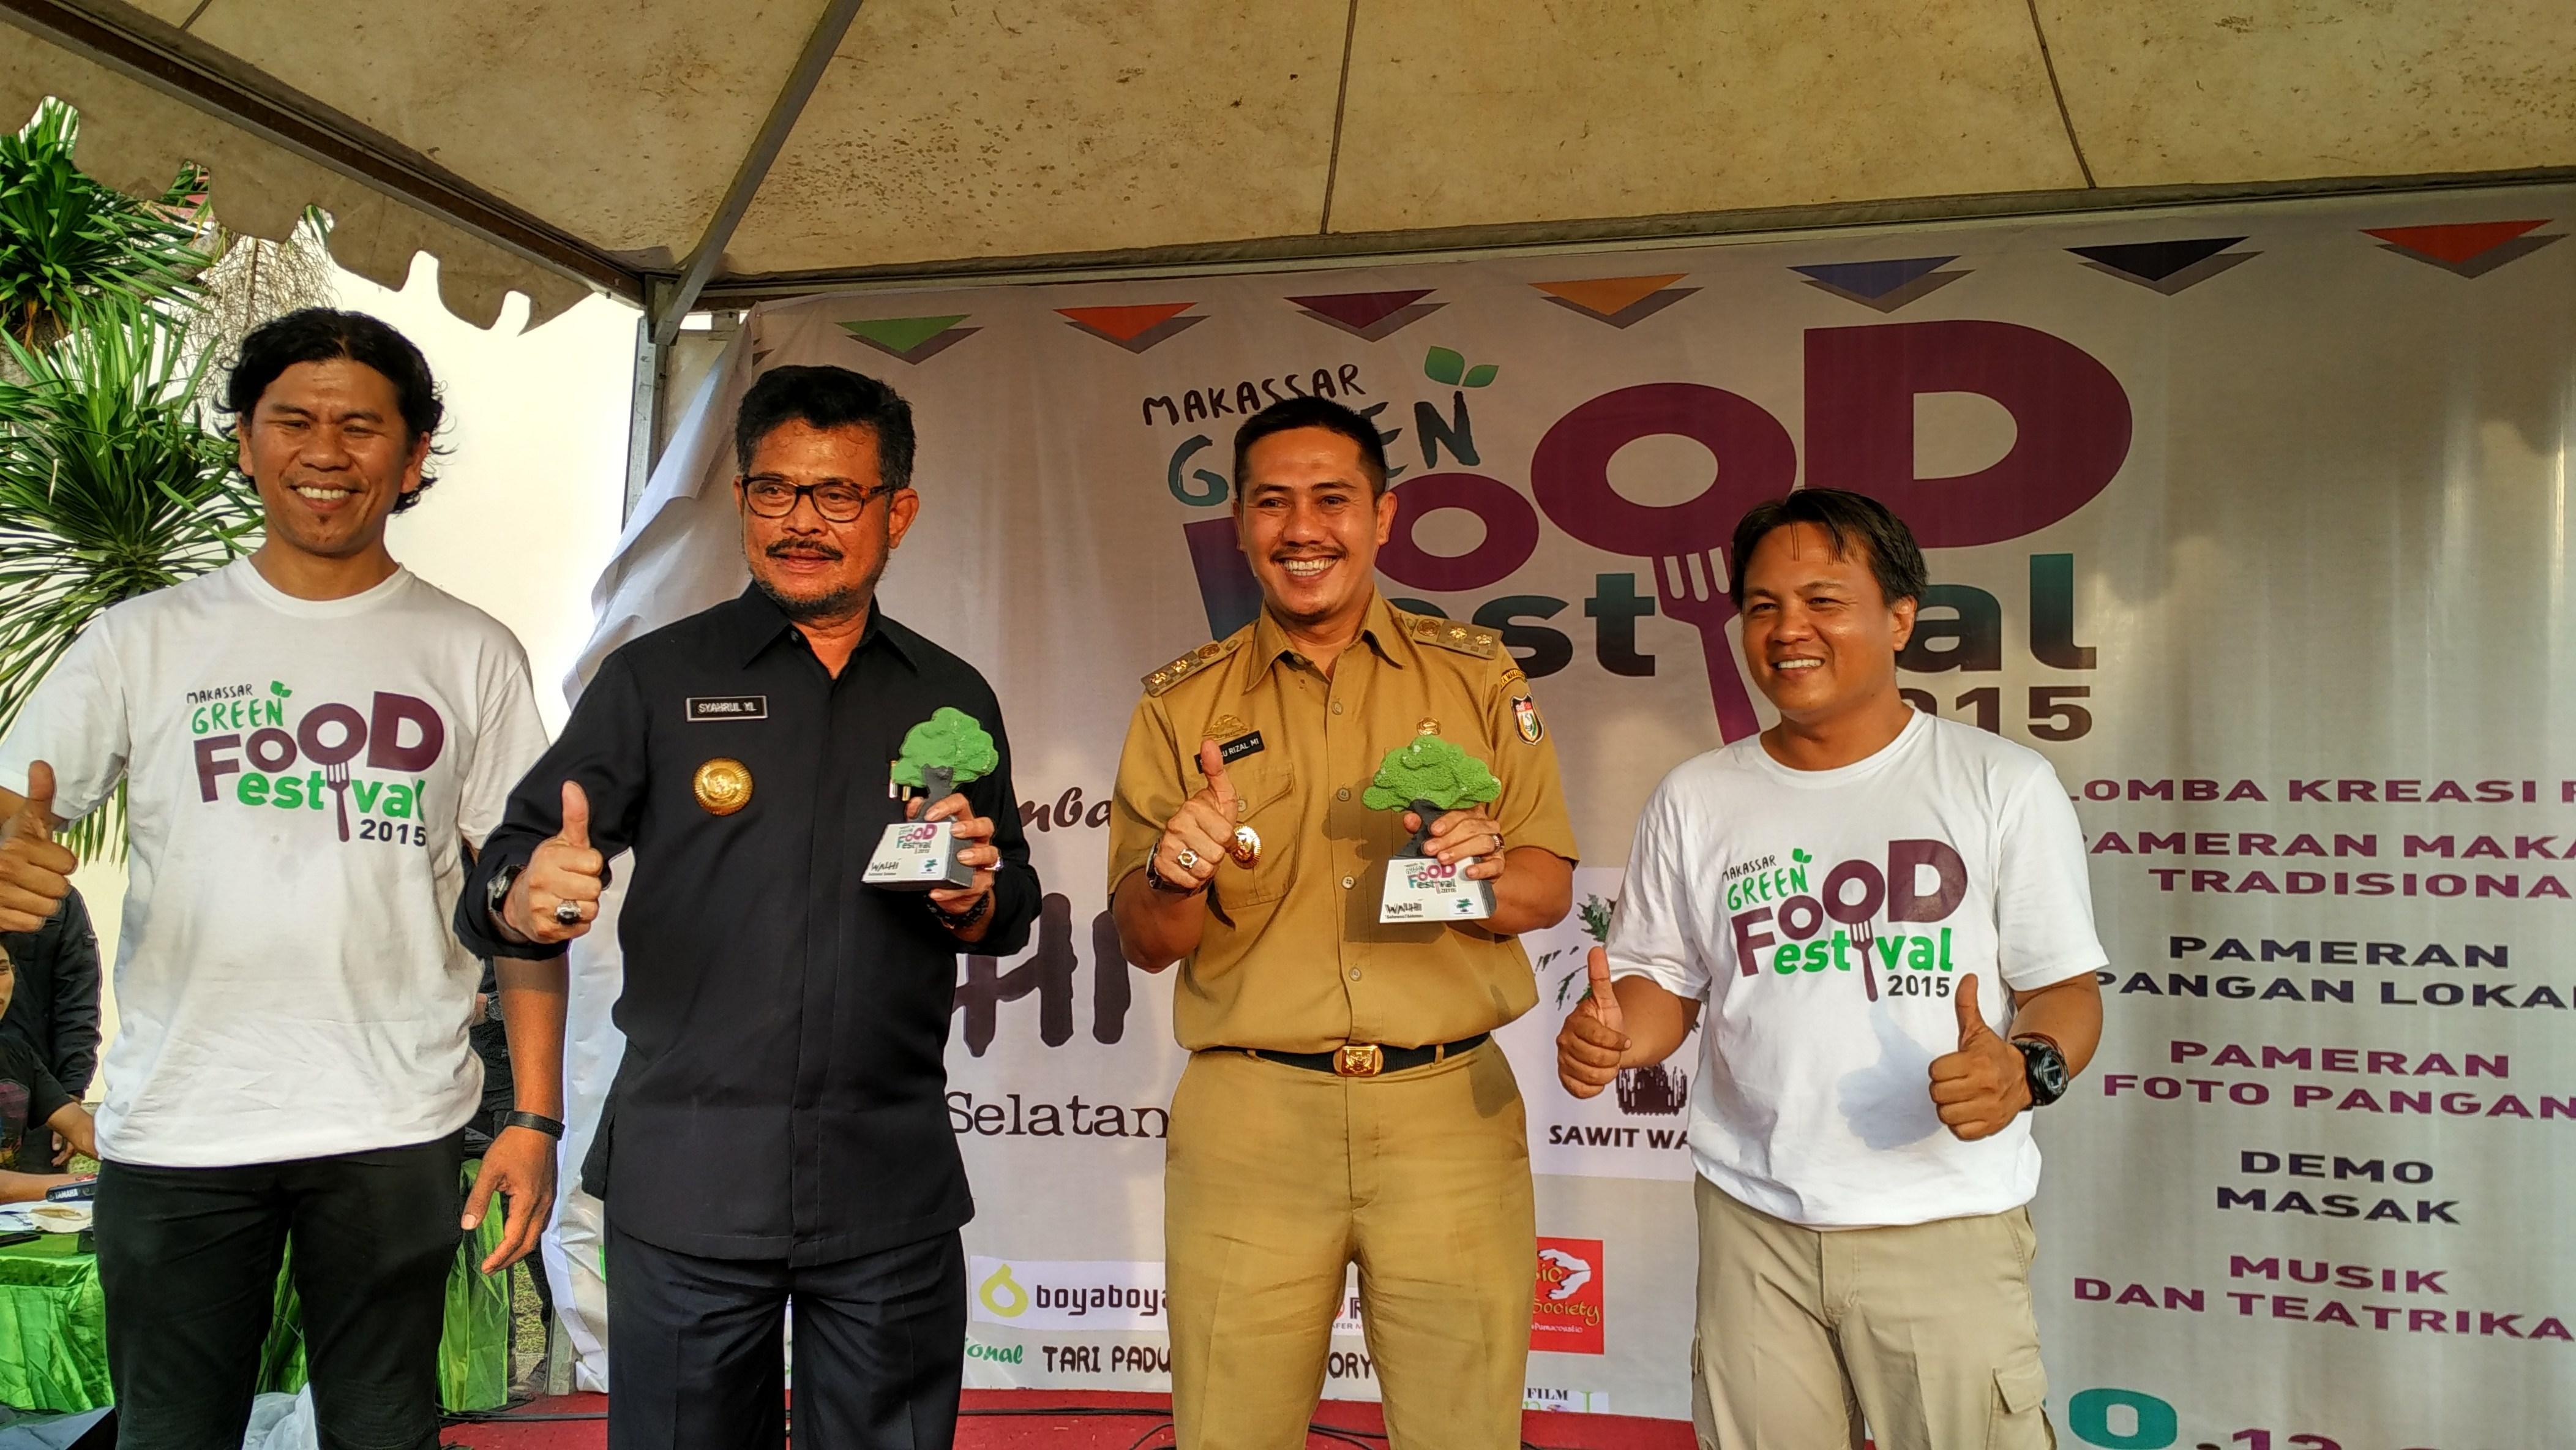 Makassar Green Food Festival 2015